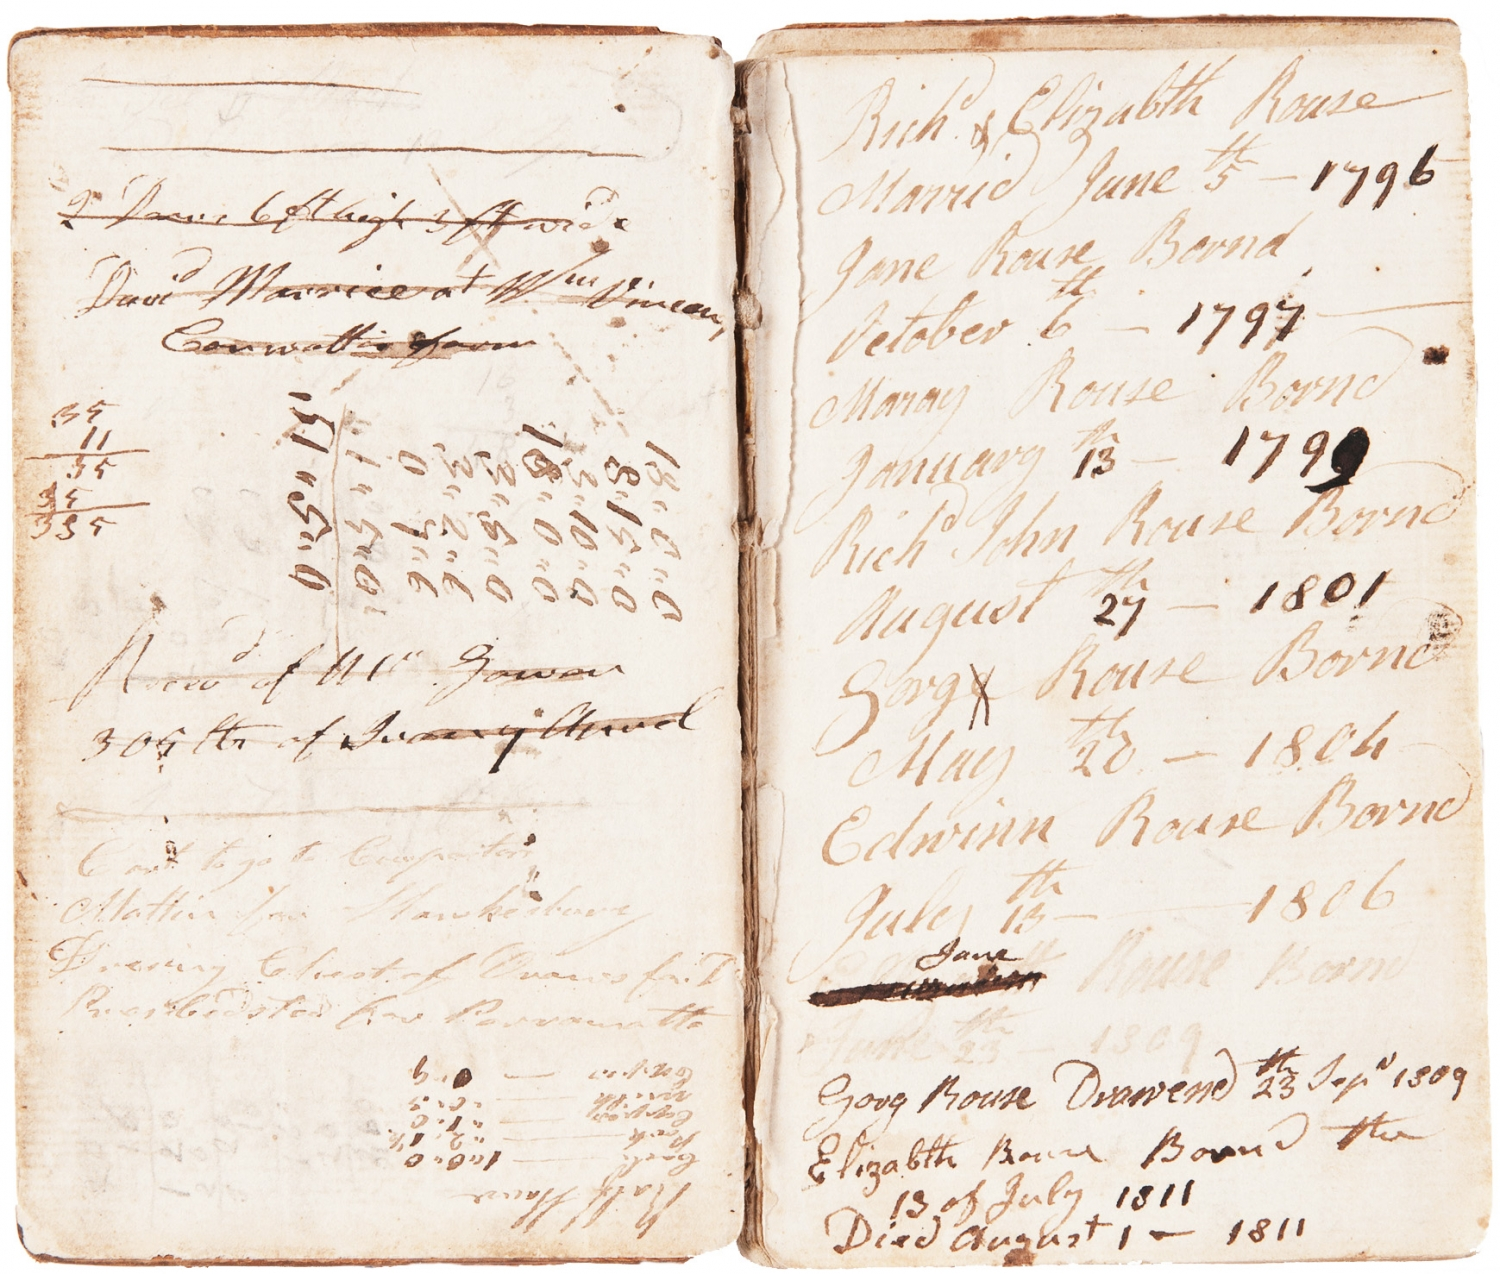 Richard Rouse and Rouse family papers: 1792-1849 (Lidstone collection)